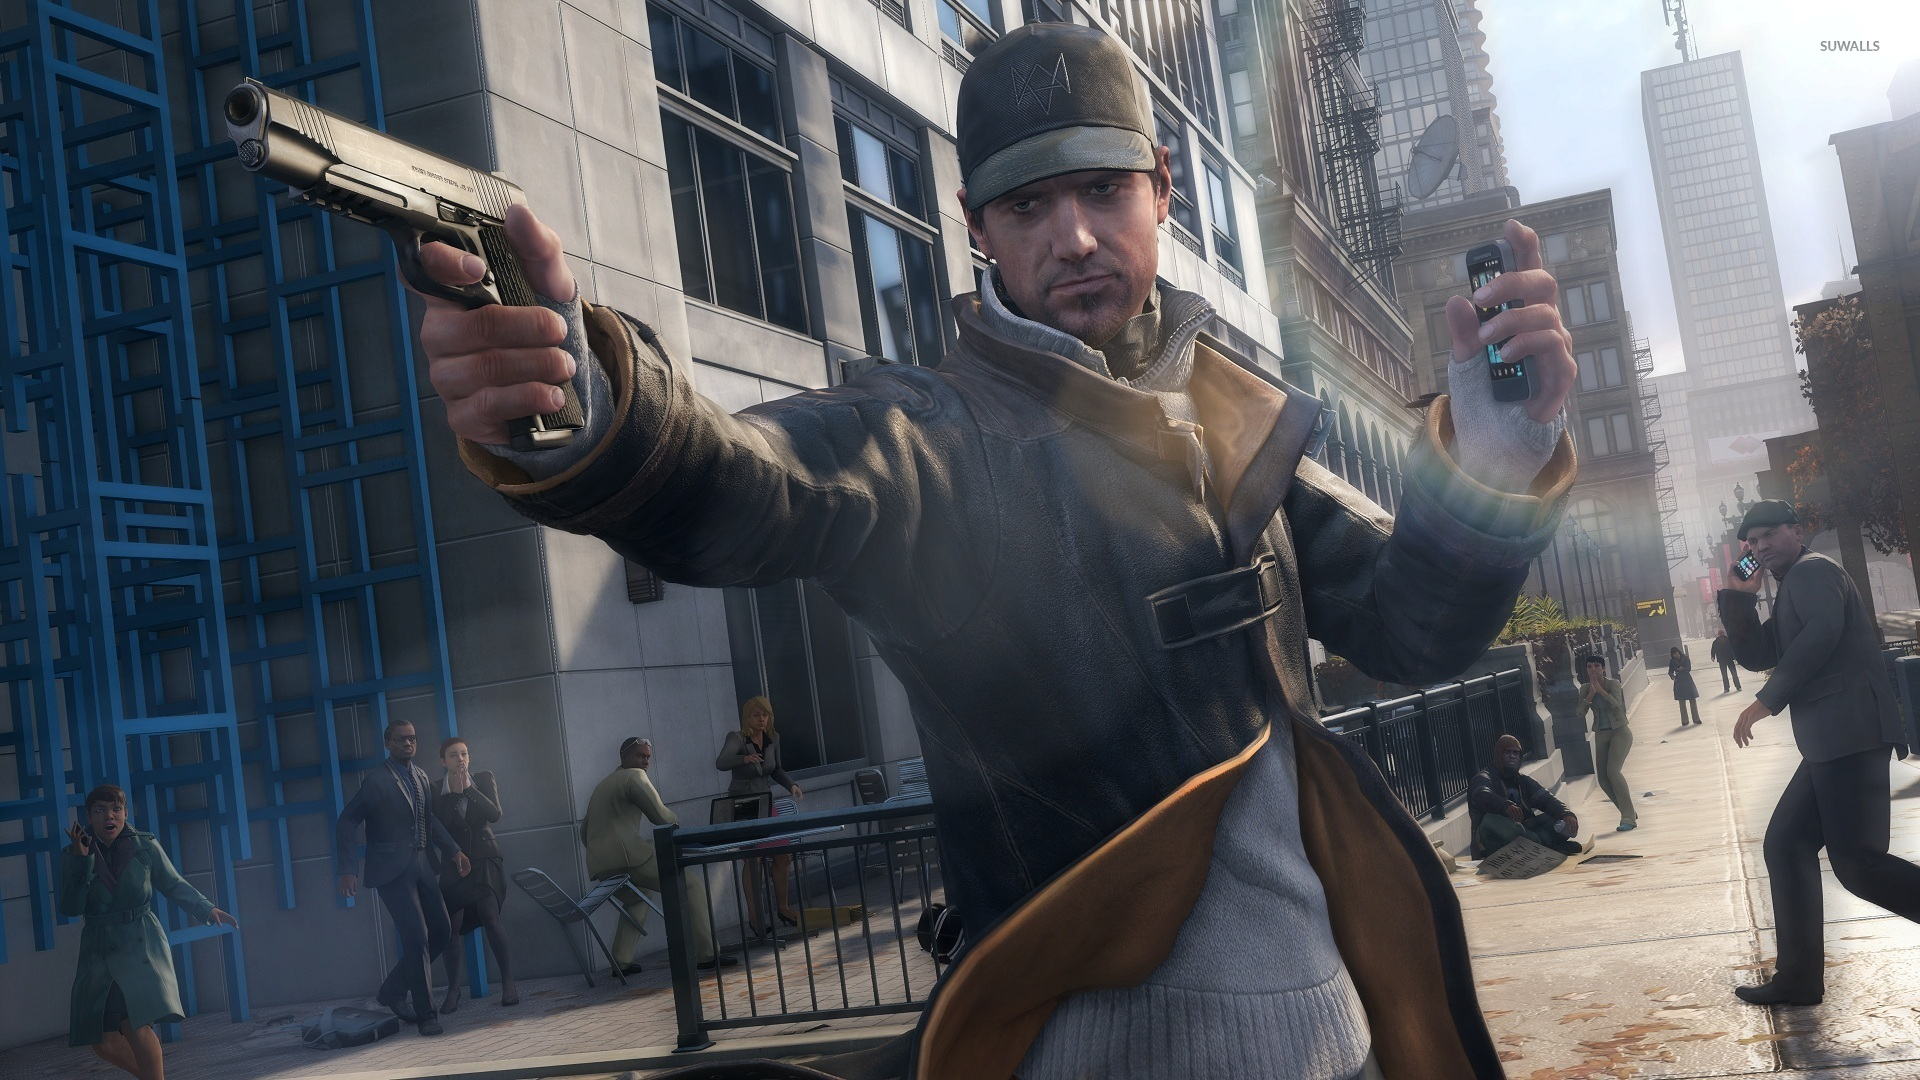 Aiden Pearce Watch Dogs 12 Wallpaper Game Wallpapers